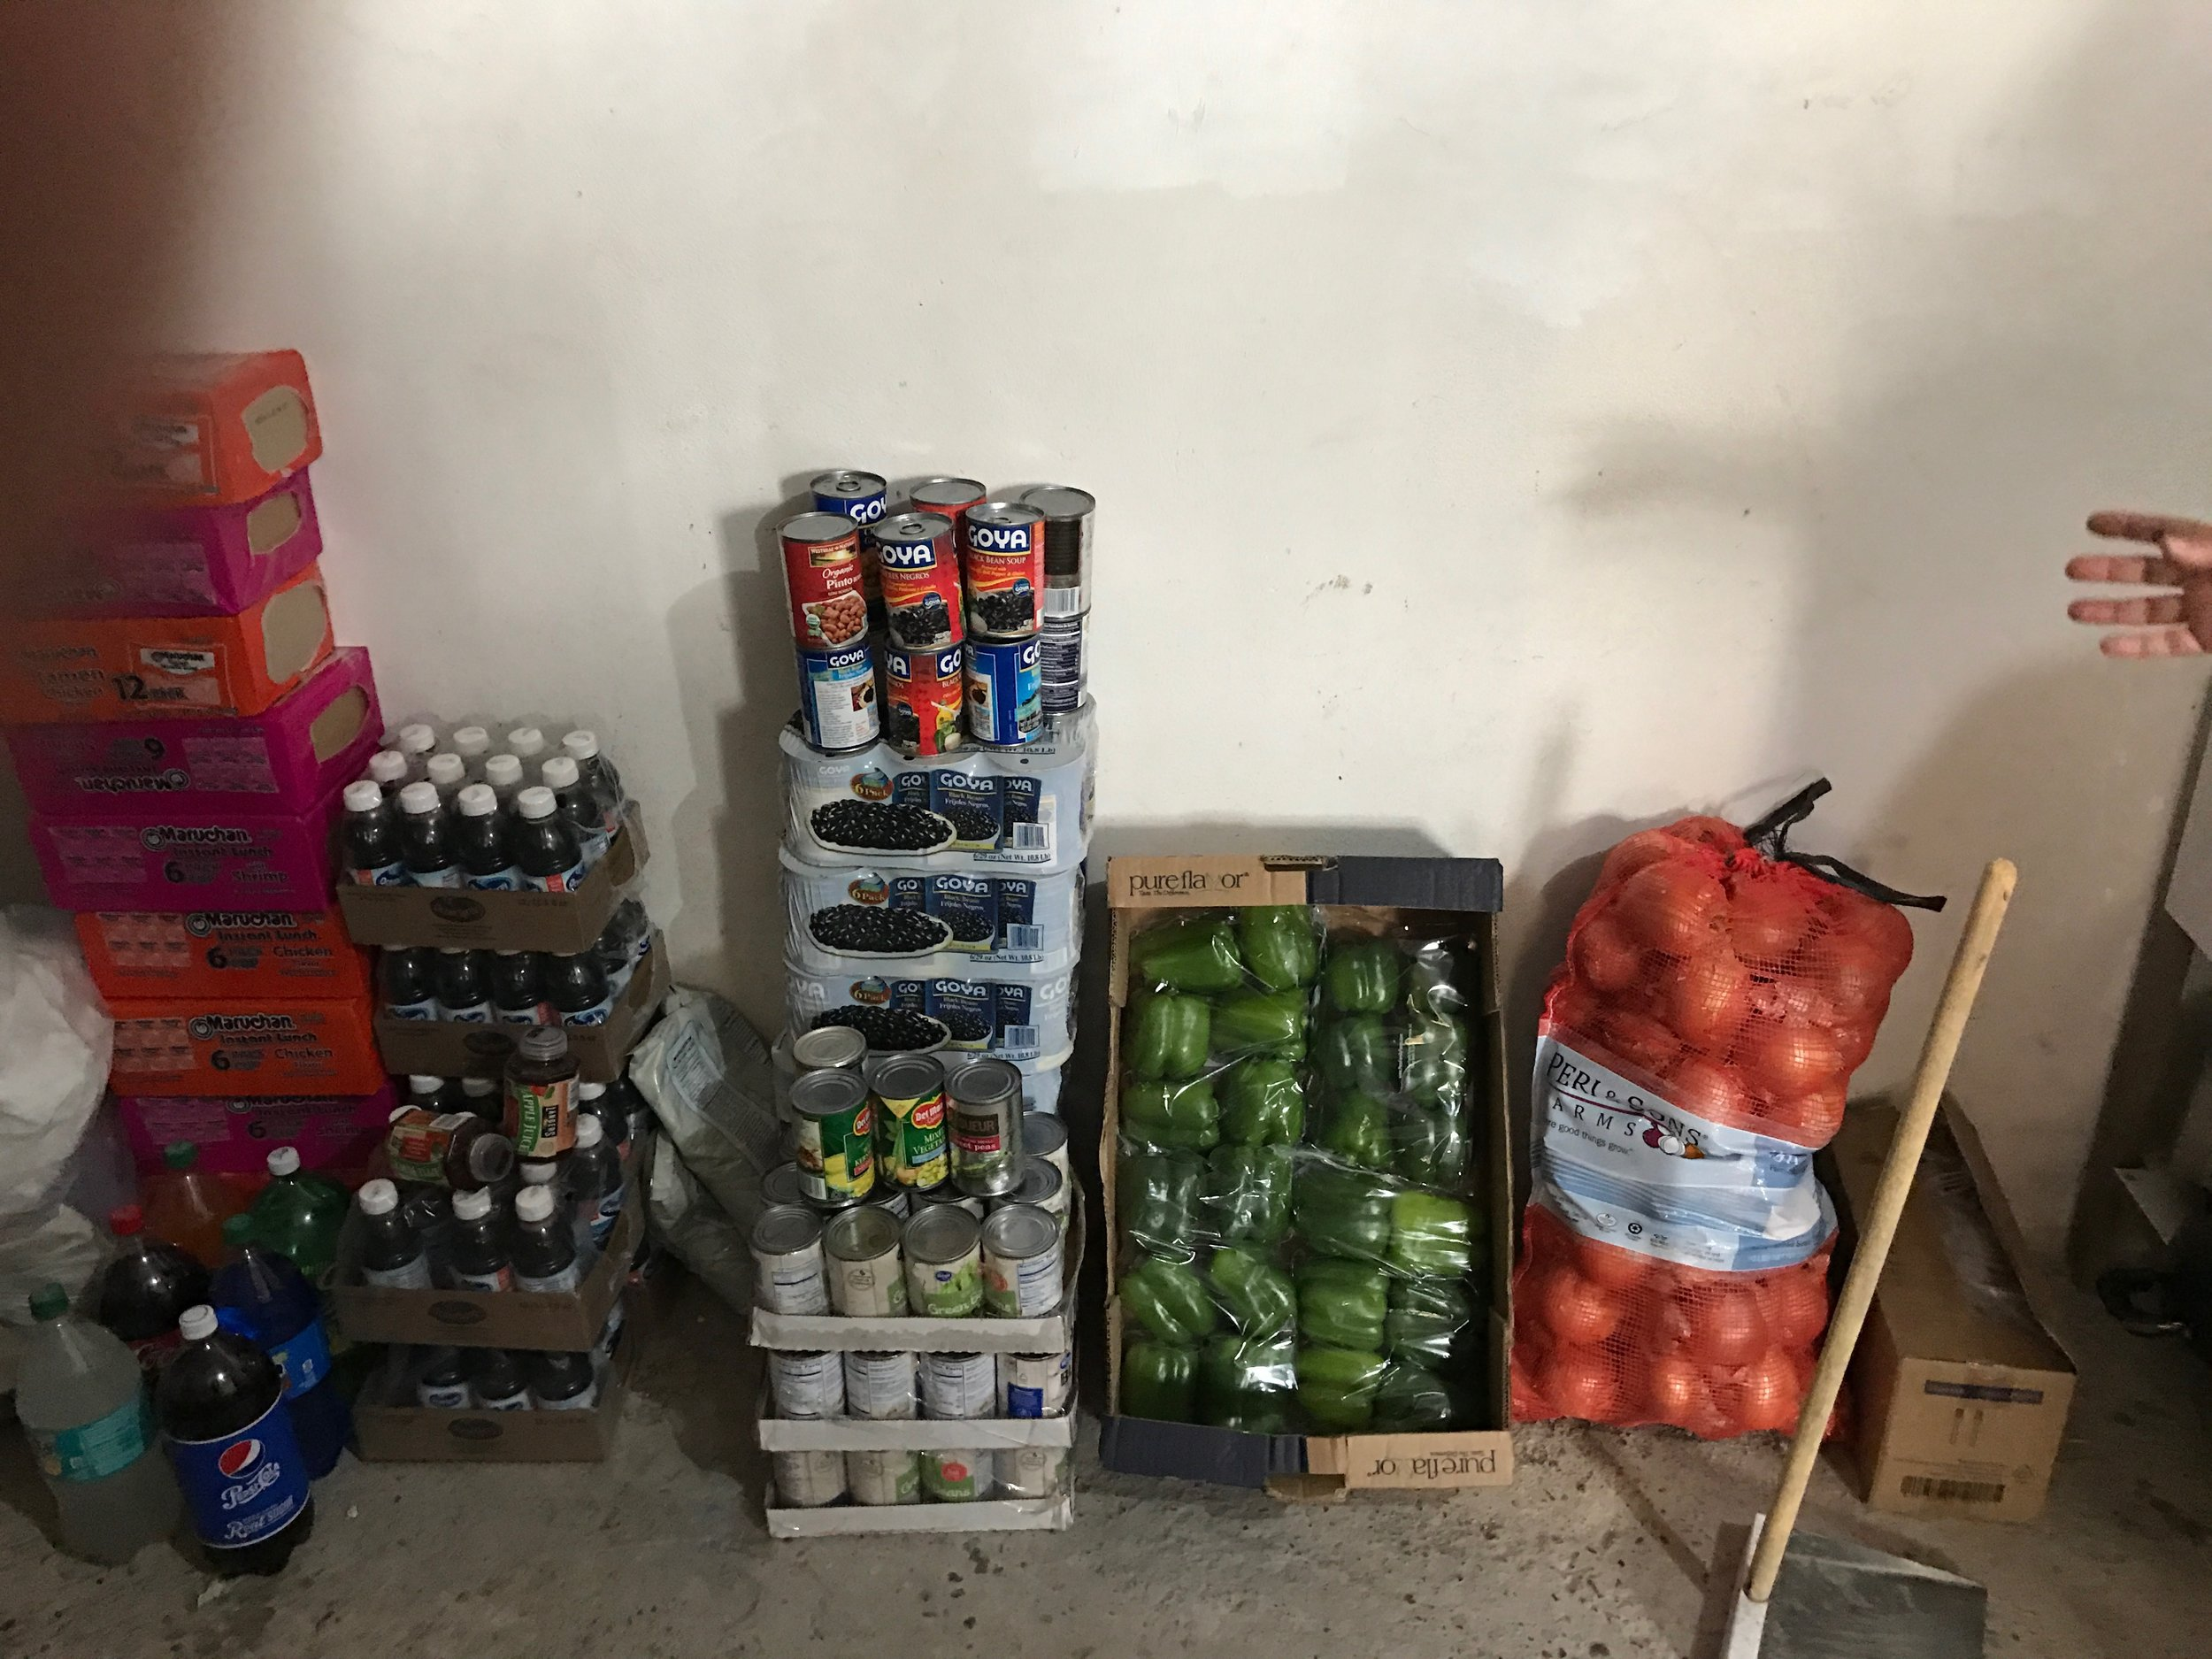 Food stock at the Baptist Church in Nuevo Laredo. The church has provided its' for cooking meals feeding 300 persons or so. Currently, one meal per day is provided. Iglesia Metodista El Divino Salvador in Nuevo Laredo is now in place to provide cooking and feeding space.